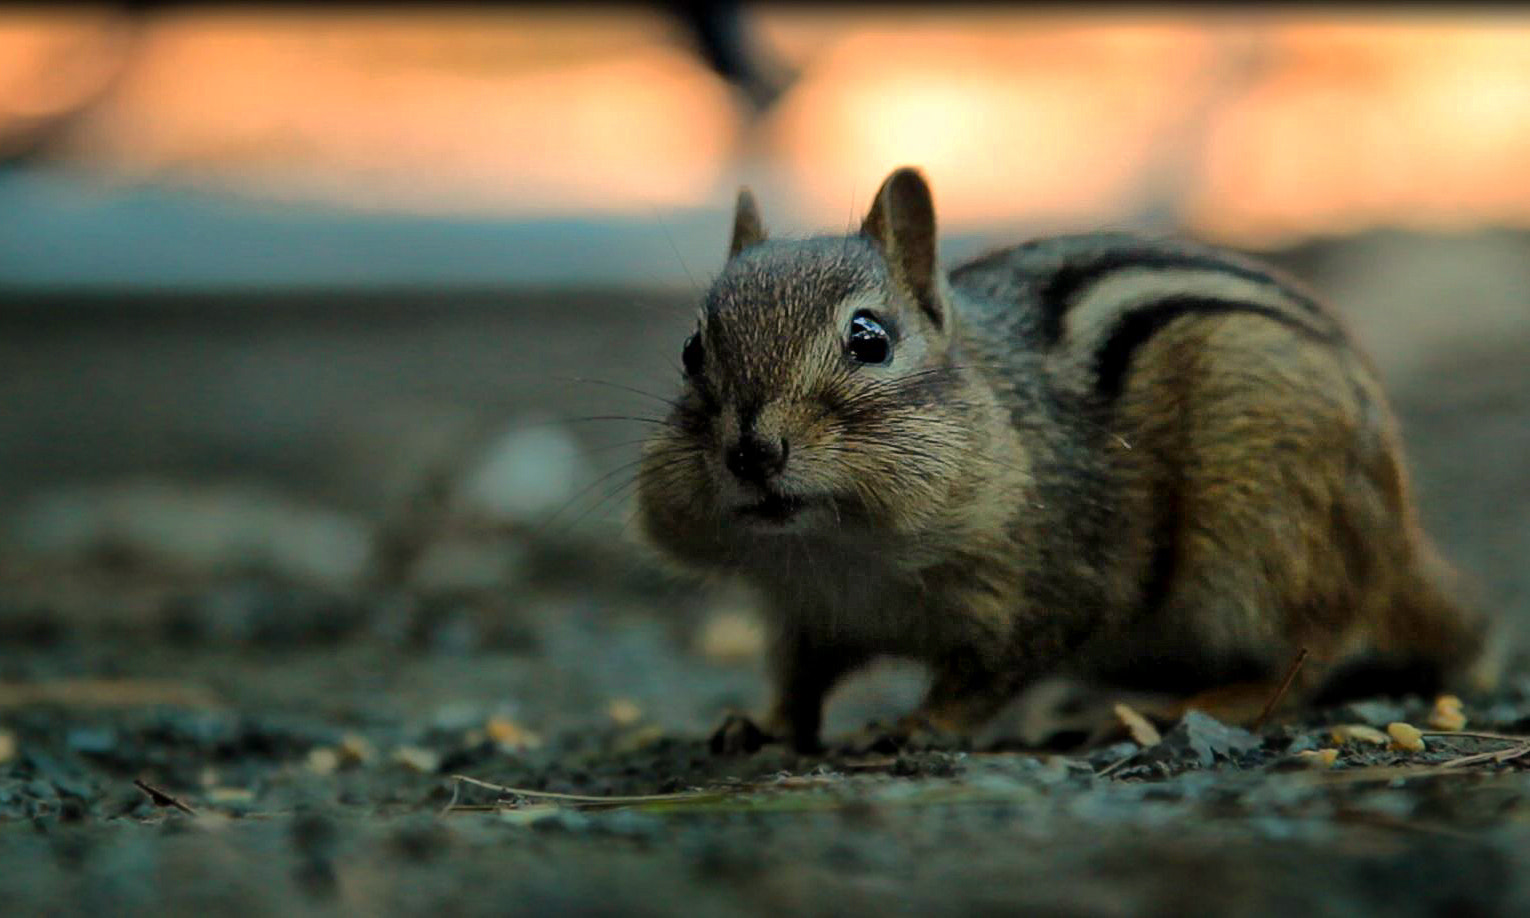 Photograph Mr. Chip Munk by Andy - Toronto  on 500px